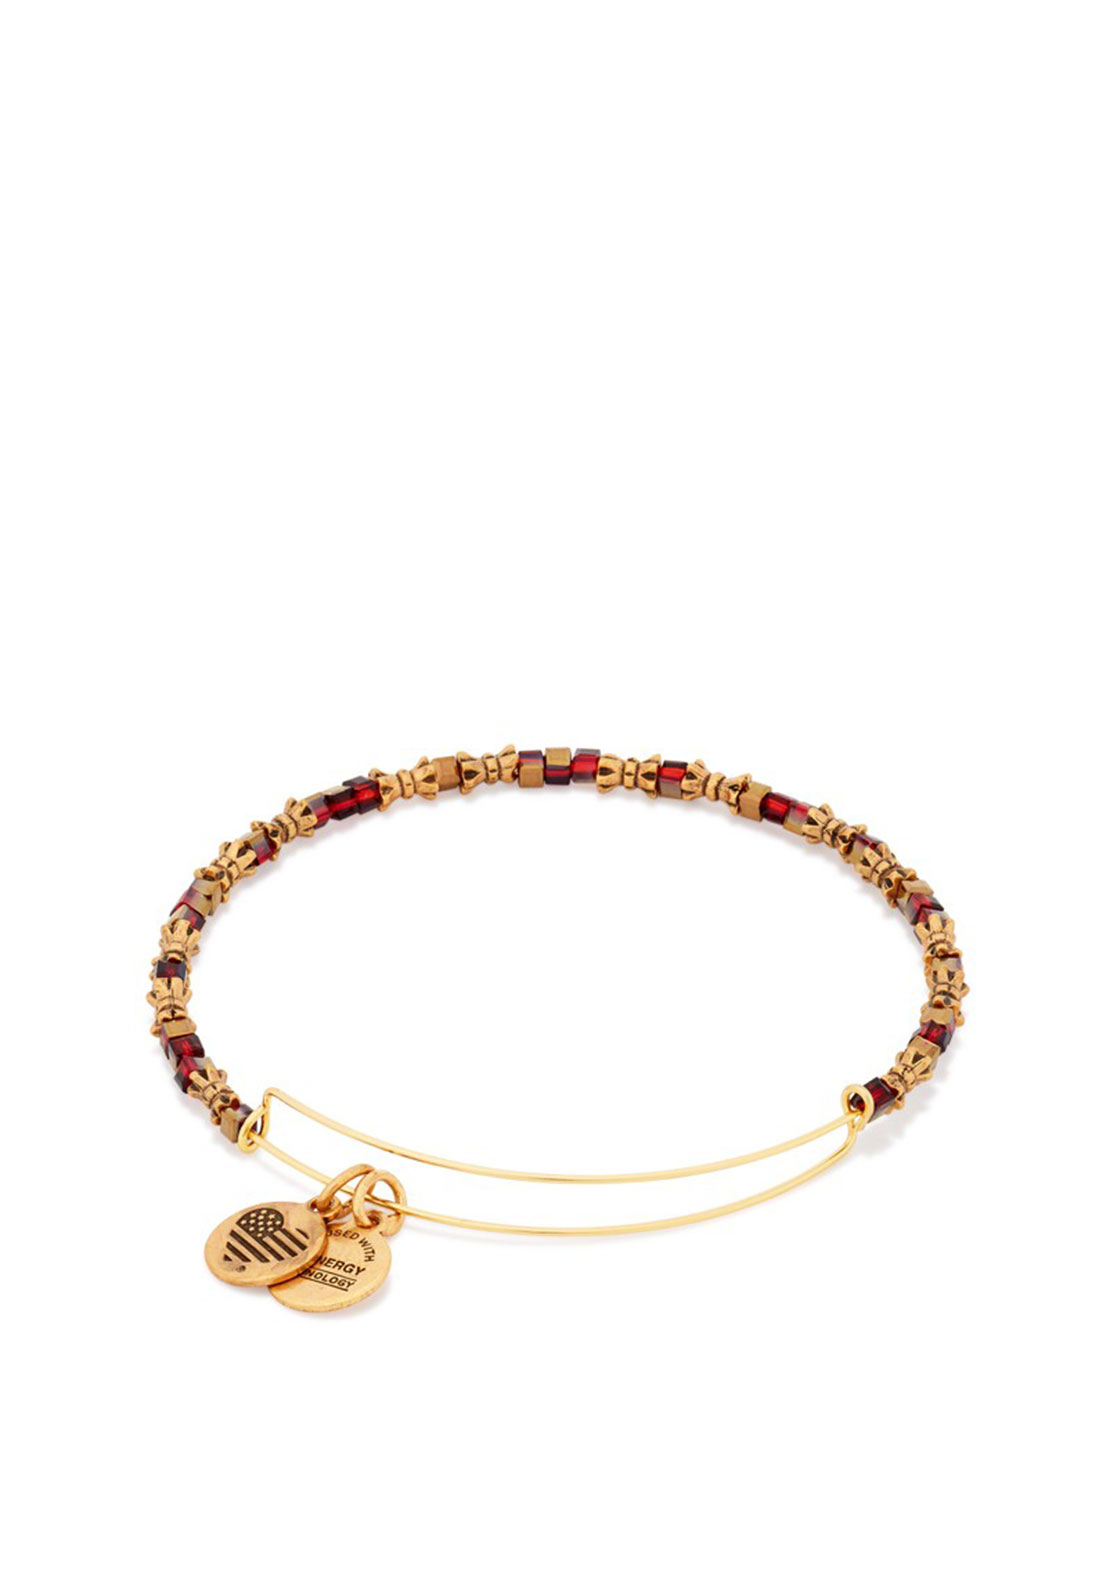 Alex and Ani Golden Days Spirit 2016 Edition Beaded Bangle, Gold